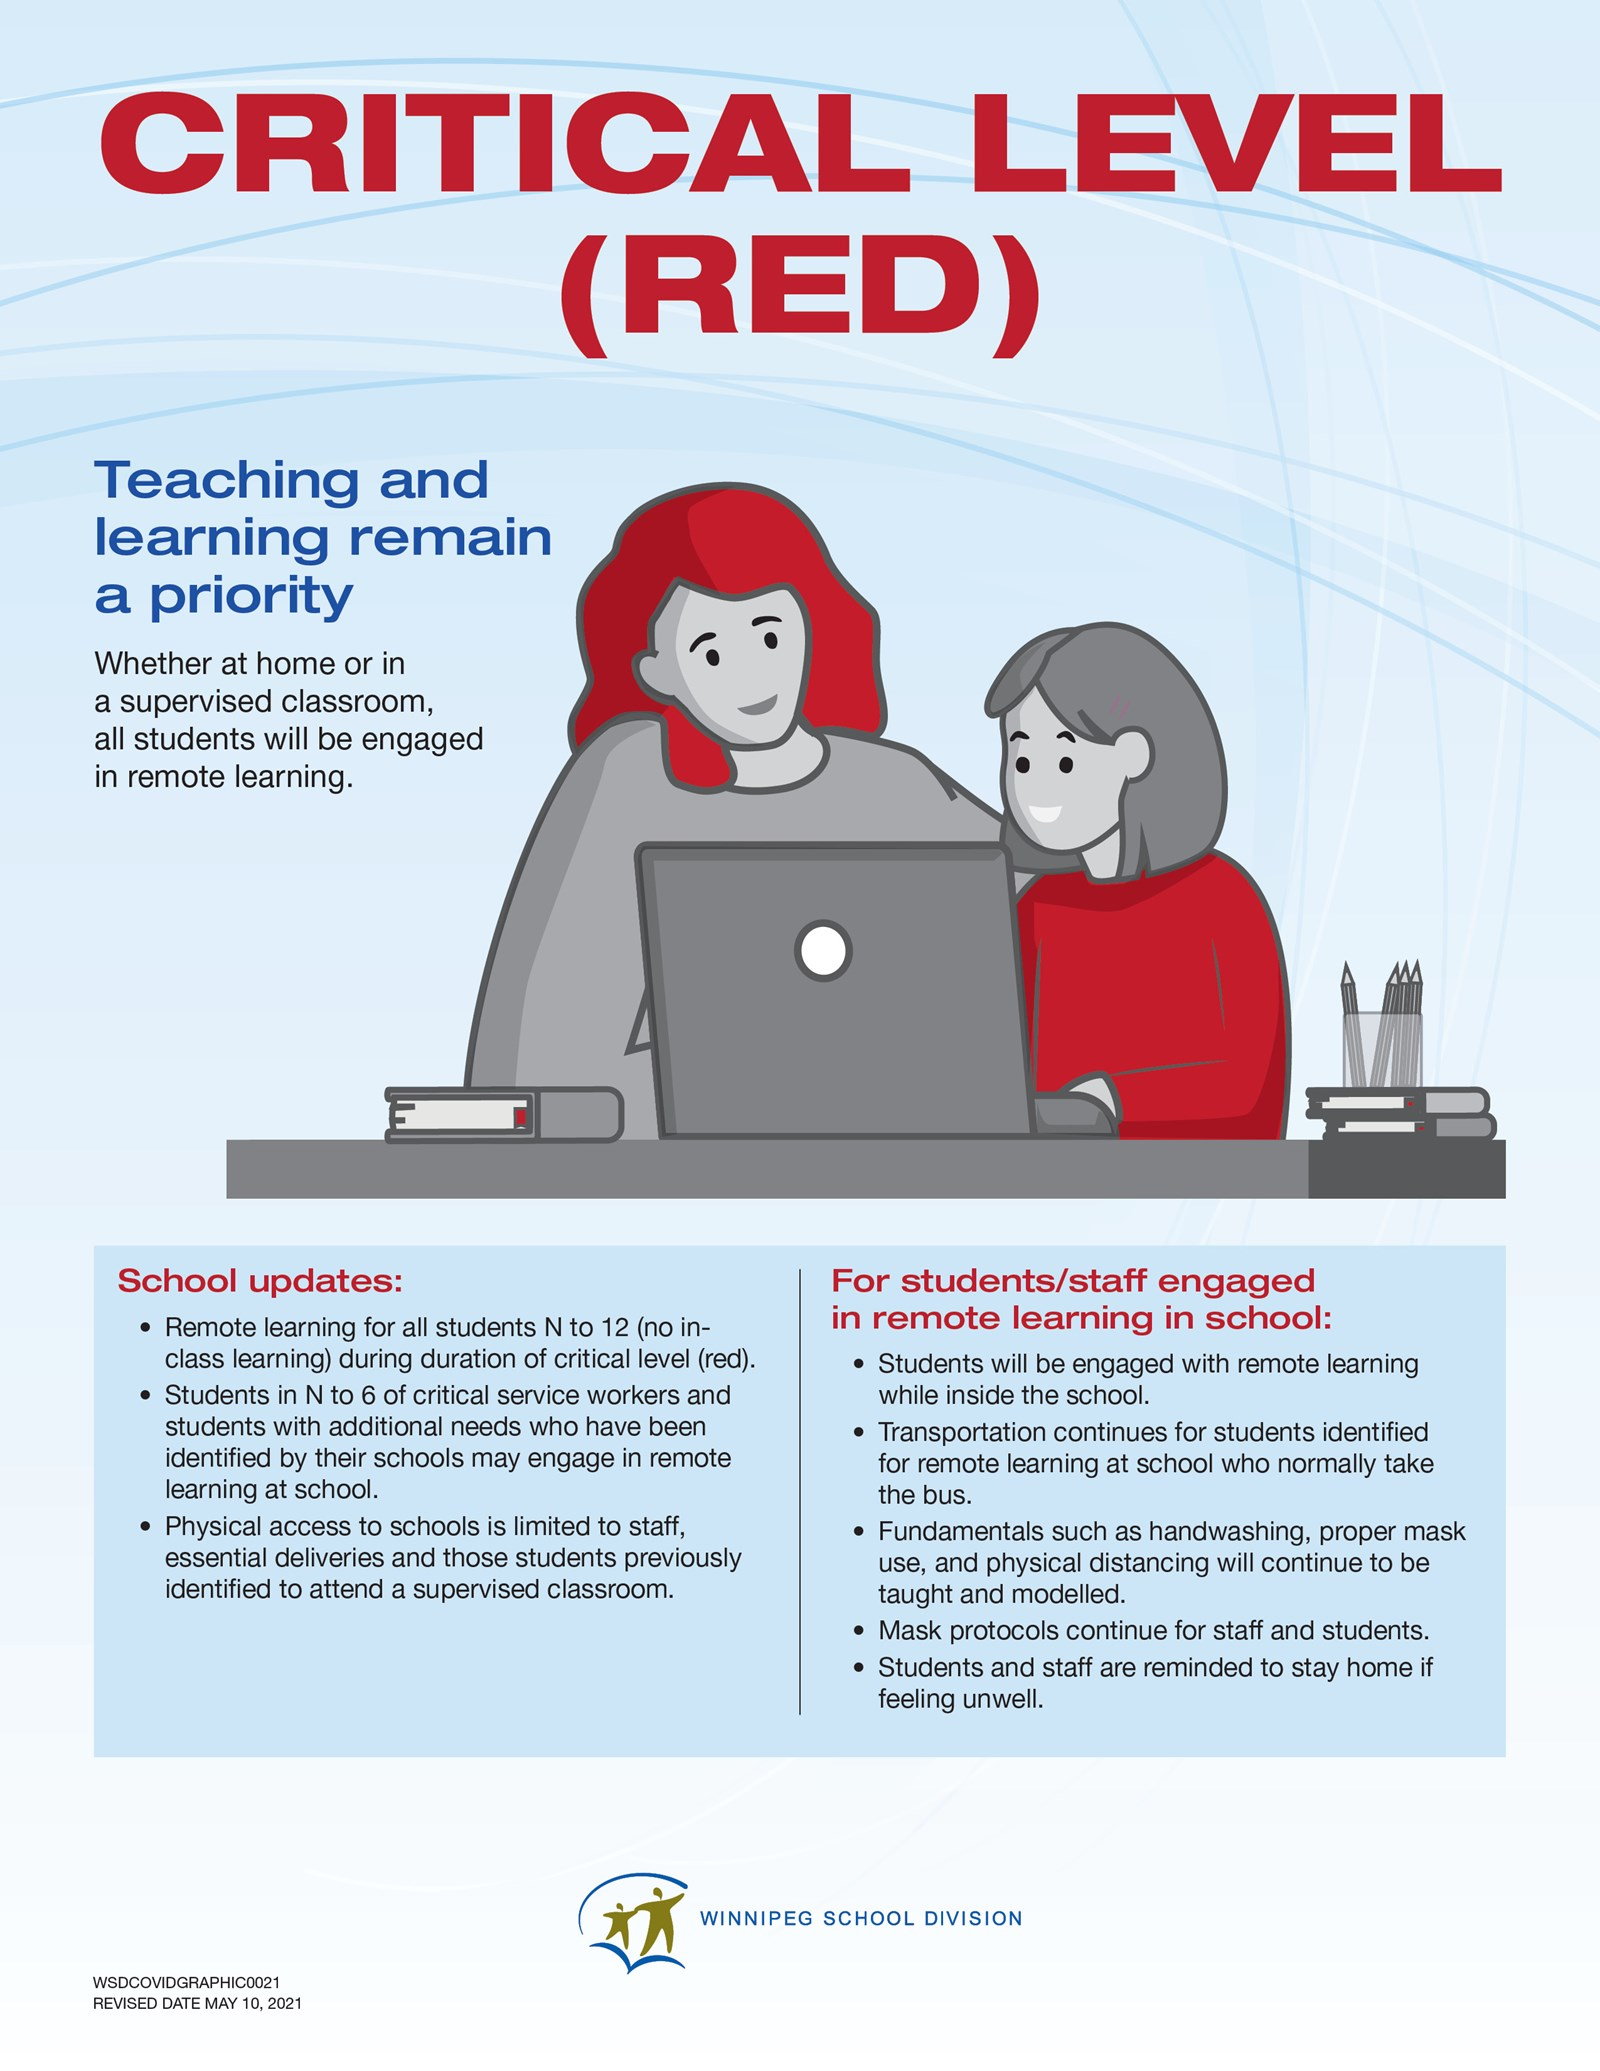 WSD Remote Learning Critical Level Red handout.jpg